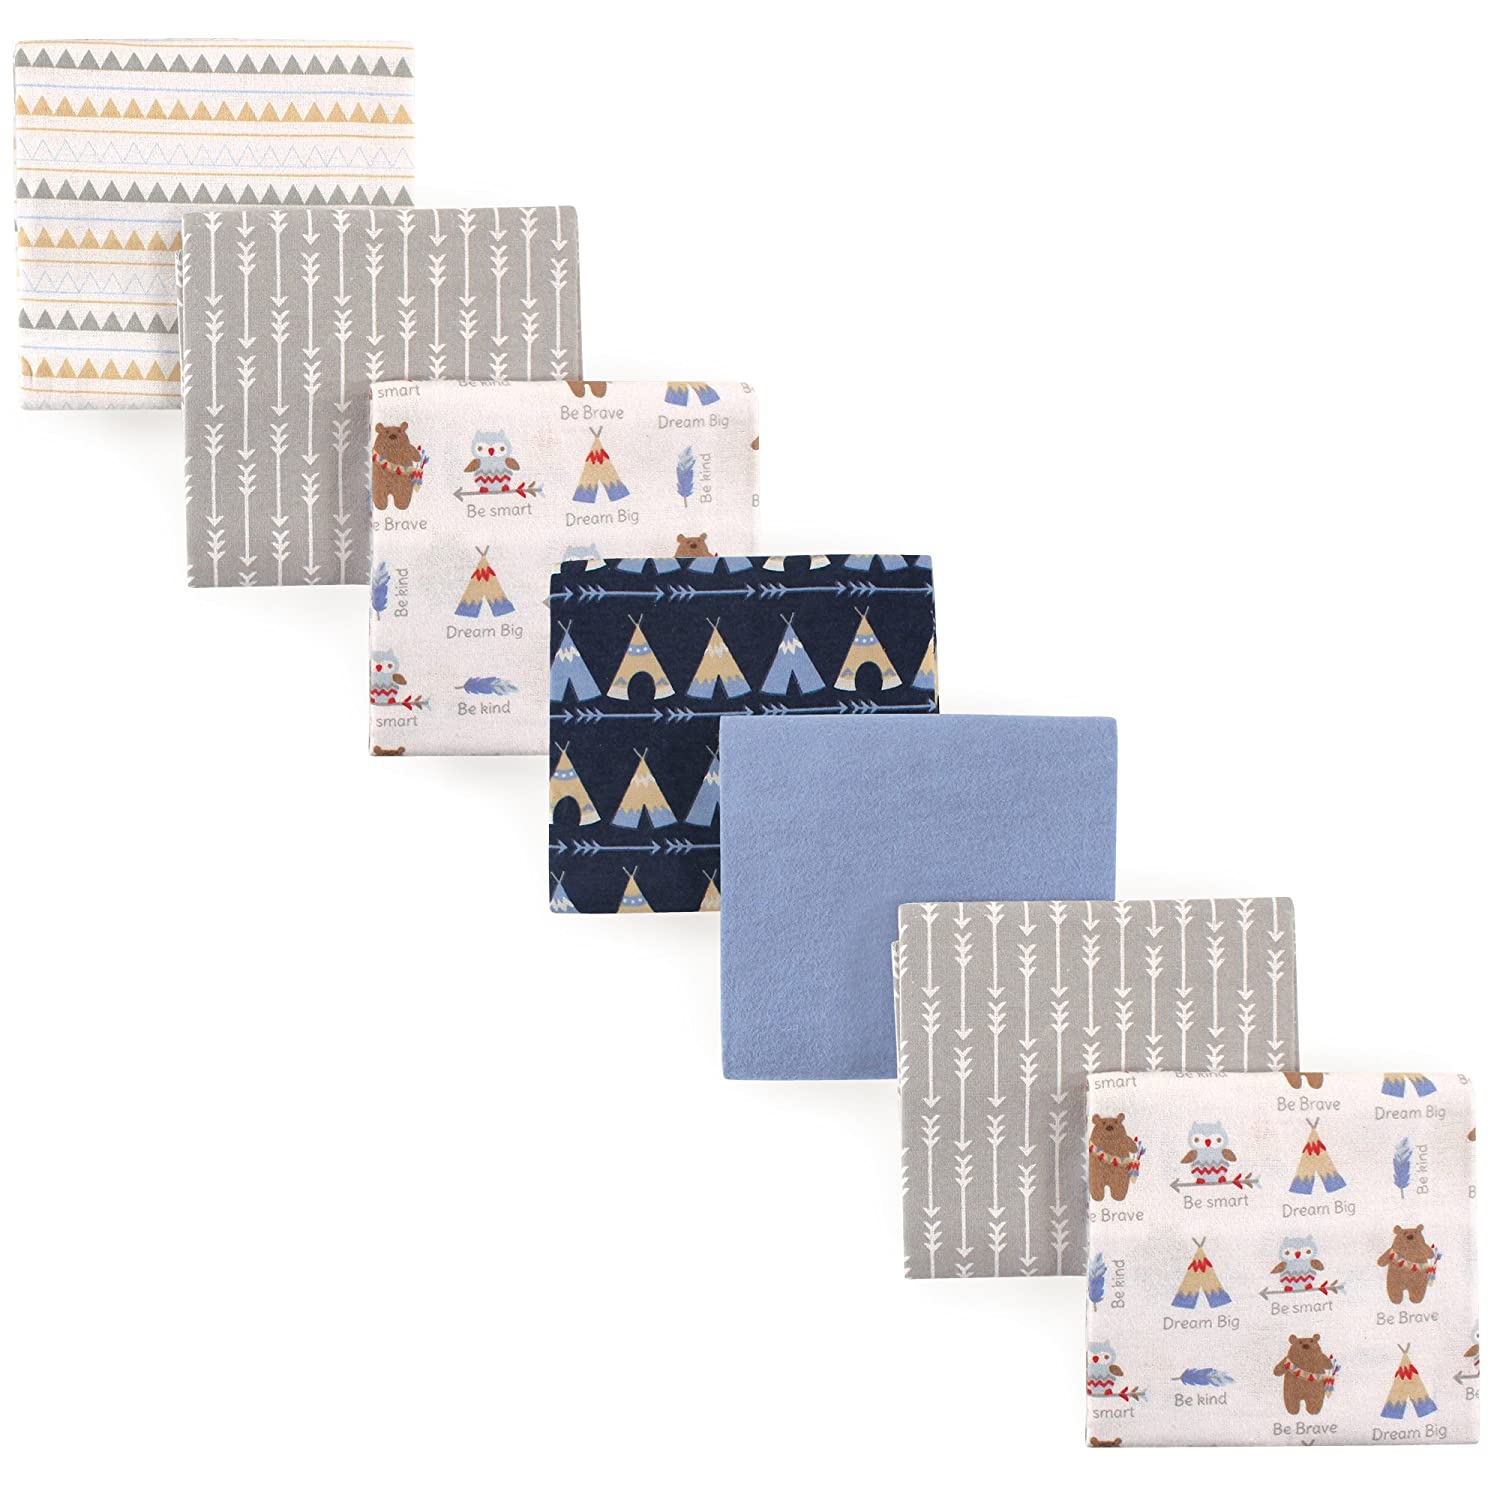 Luvable Friends 7 Piece Flannel Receiving Blanket, Tribe, One Size BabyVision Inc. Children's Apparel 40377